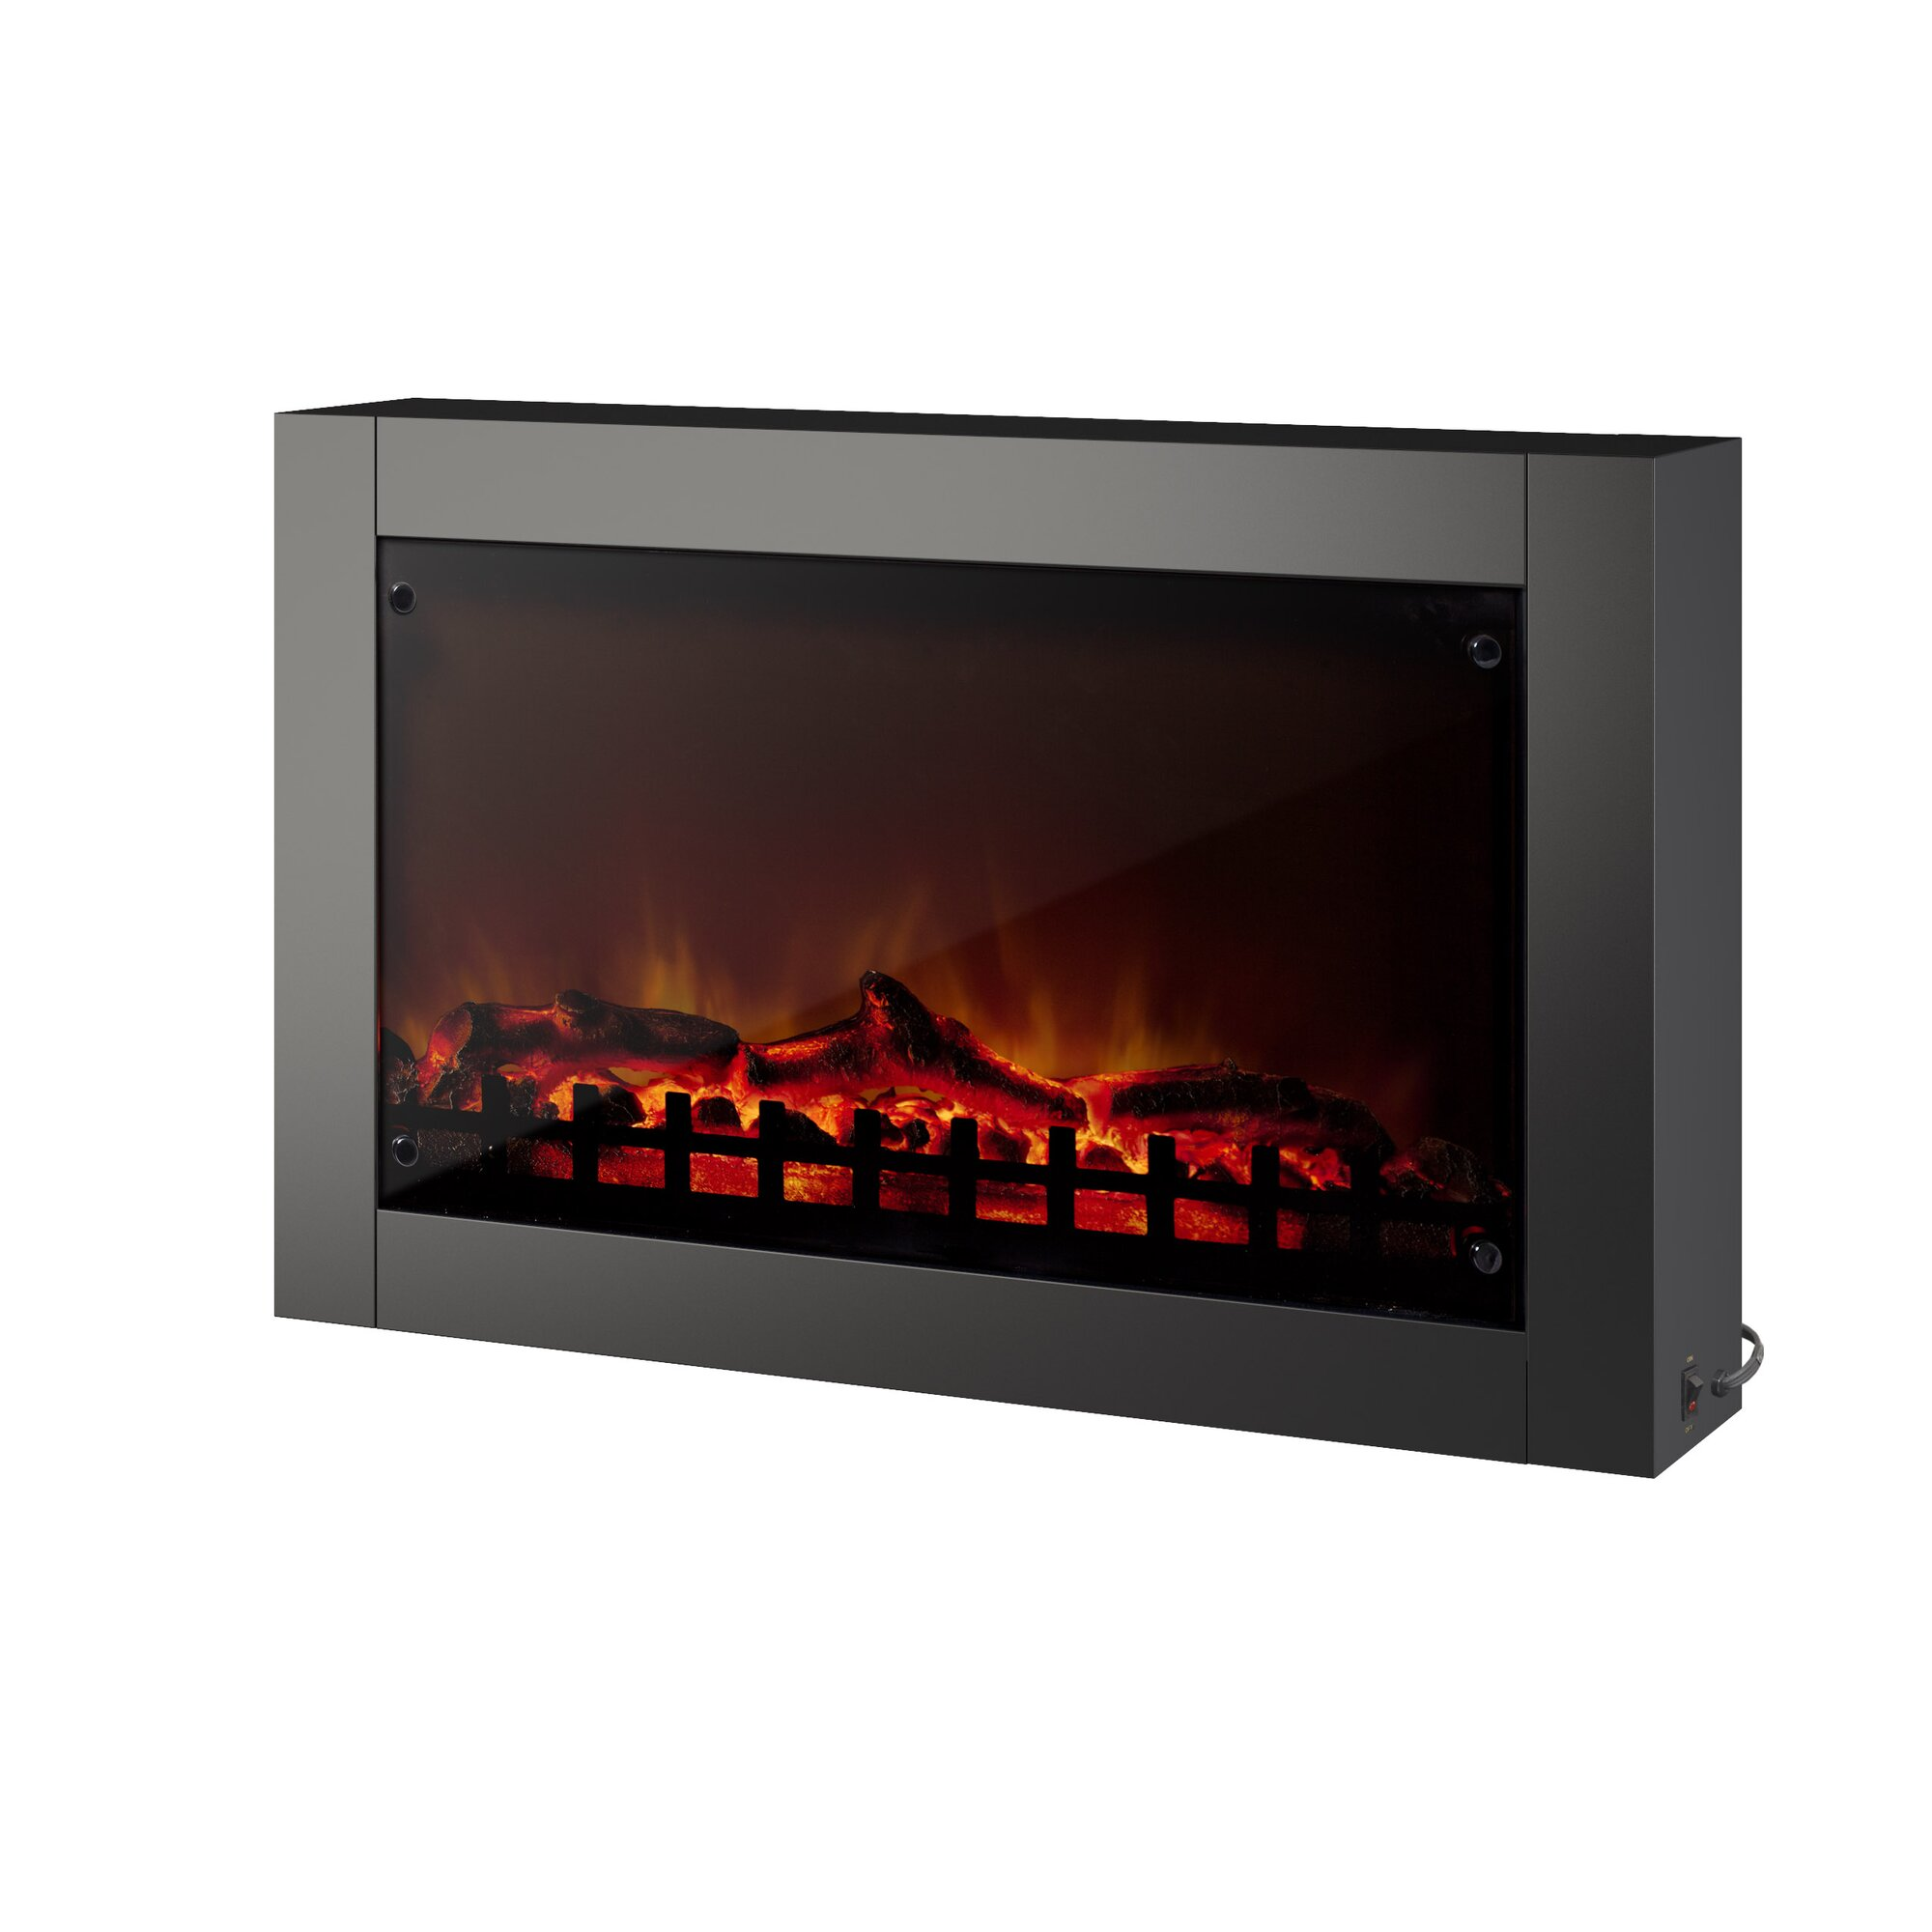 wall mount electric fireplace corliving wall mount electric fireplace amp reviews wayfair 12761